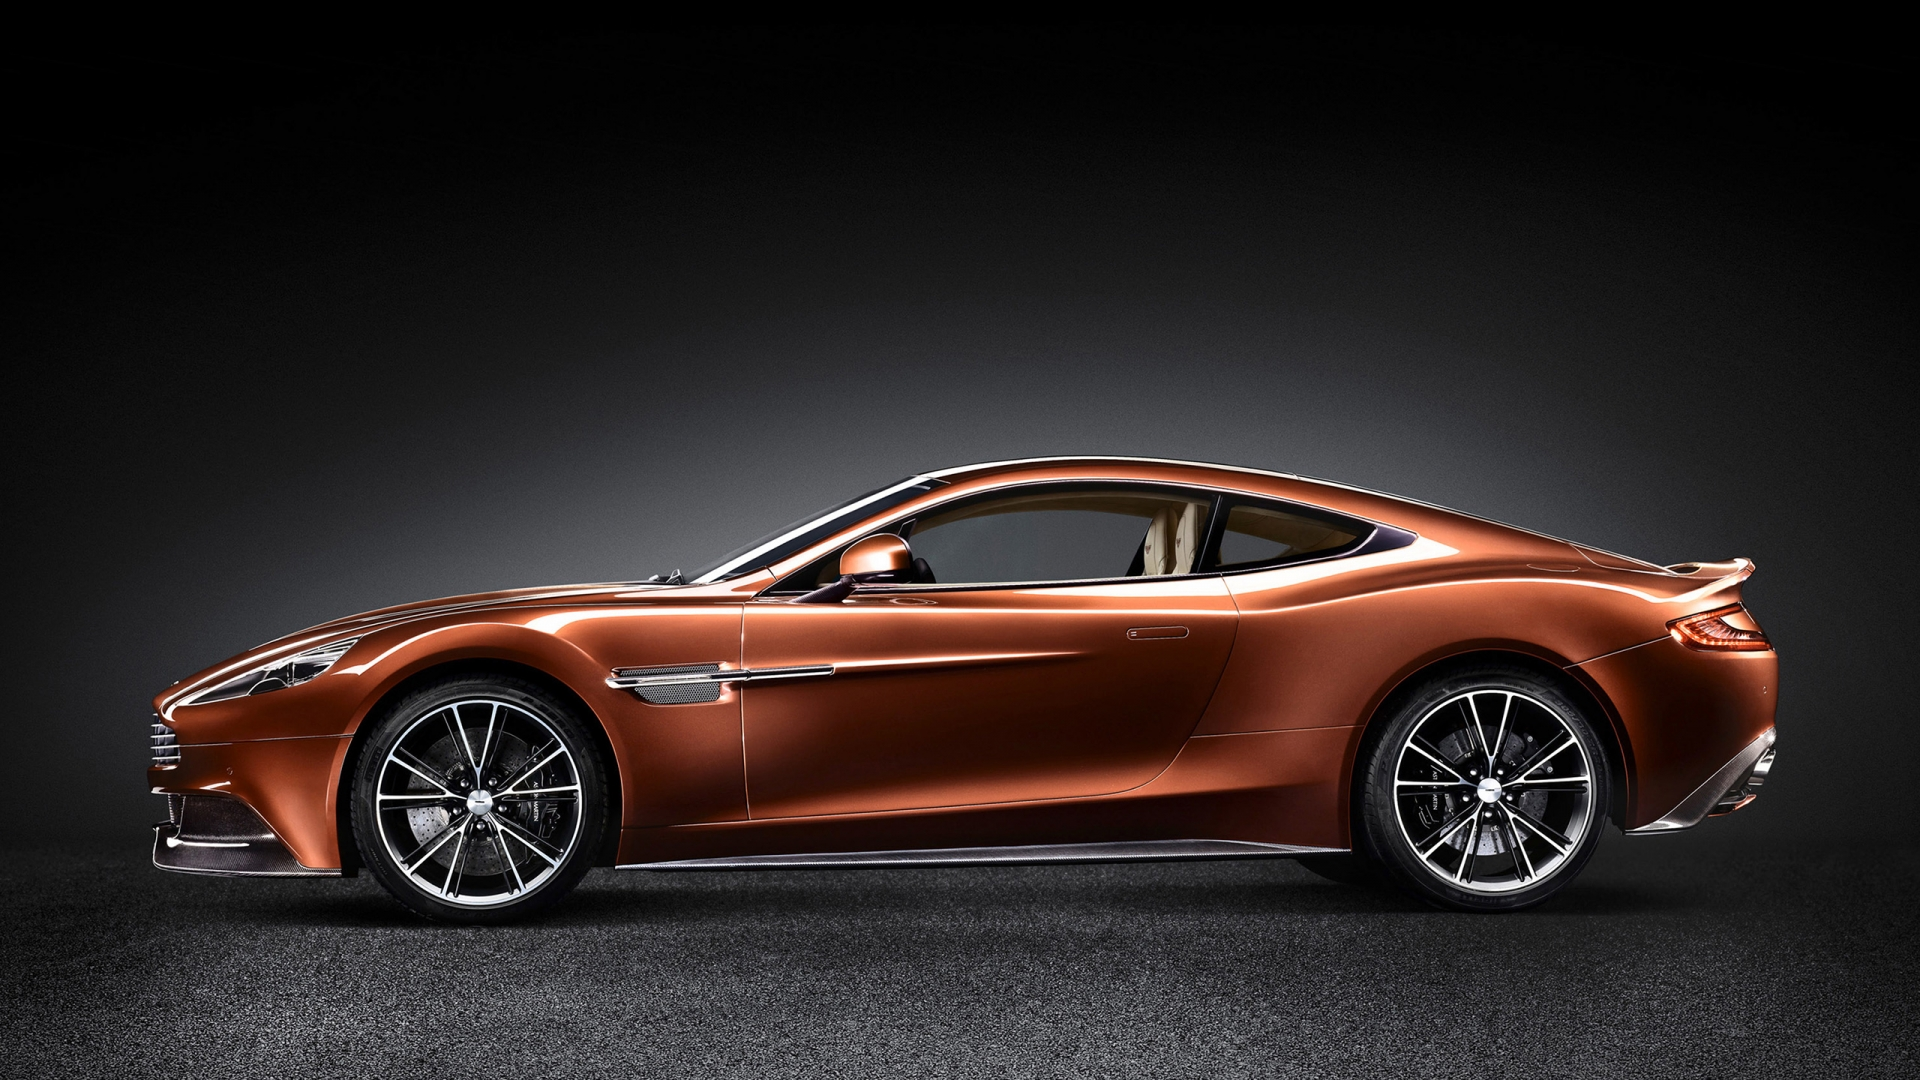 Aston martin vanquish side view   High Definition Wallpapers   HD 1920x1080